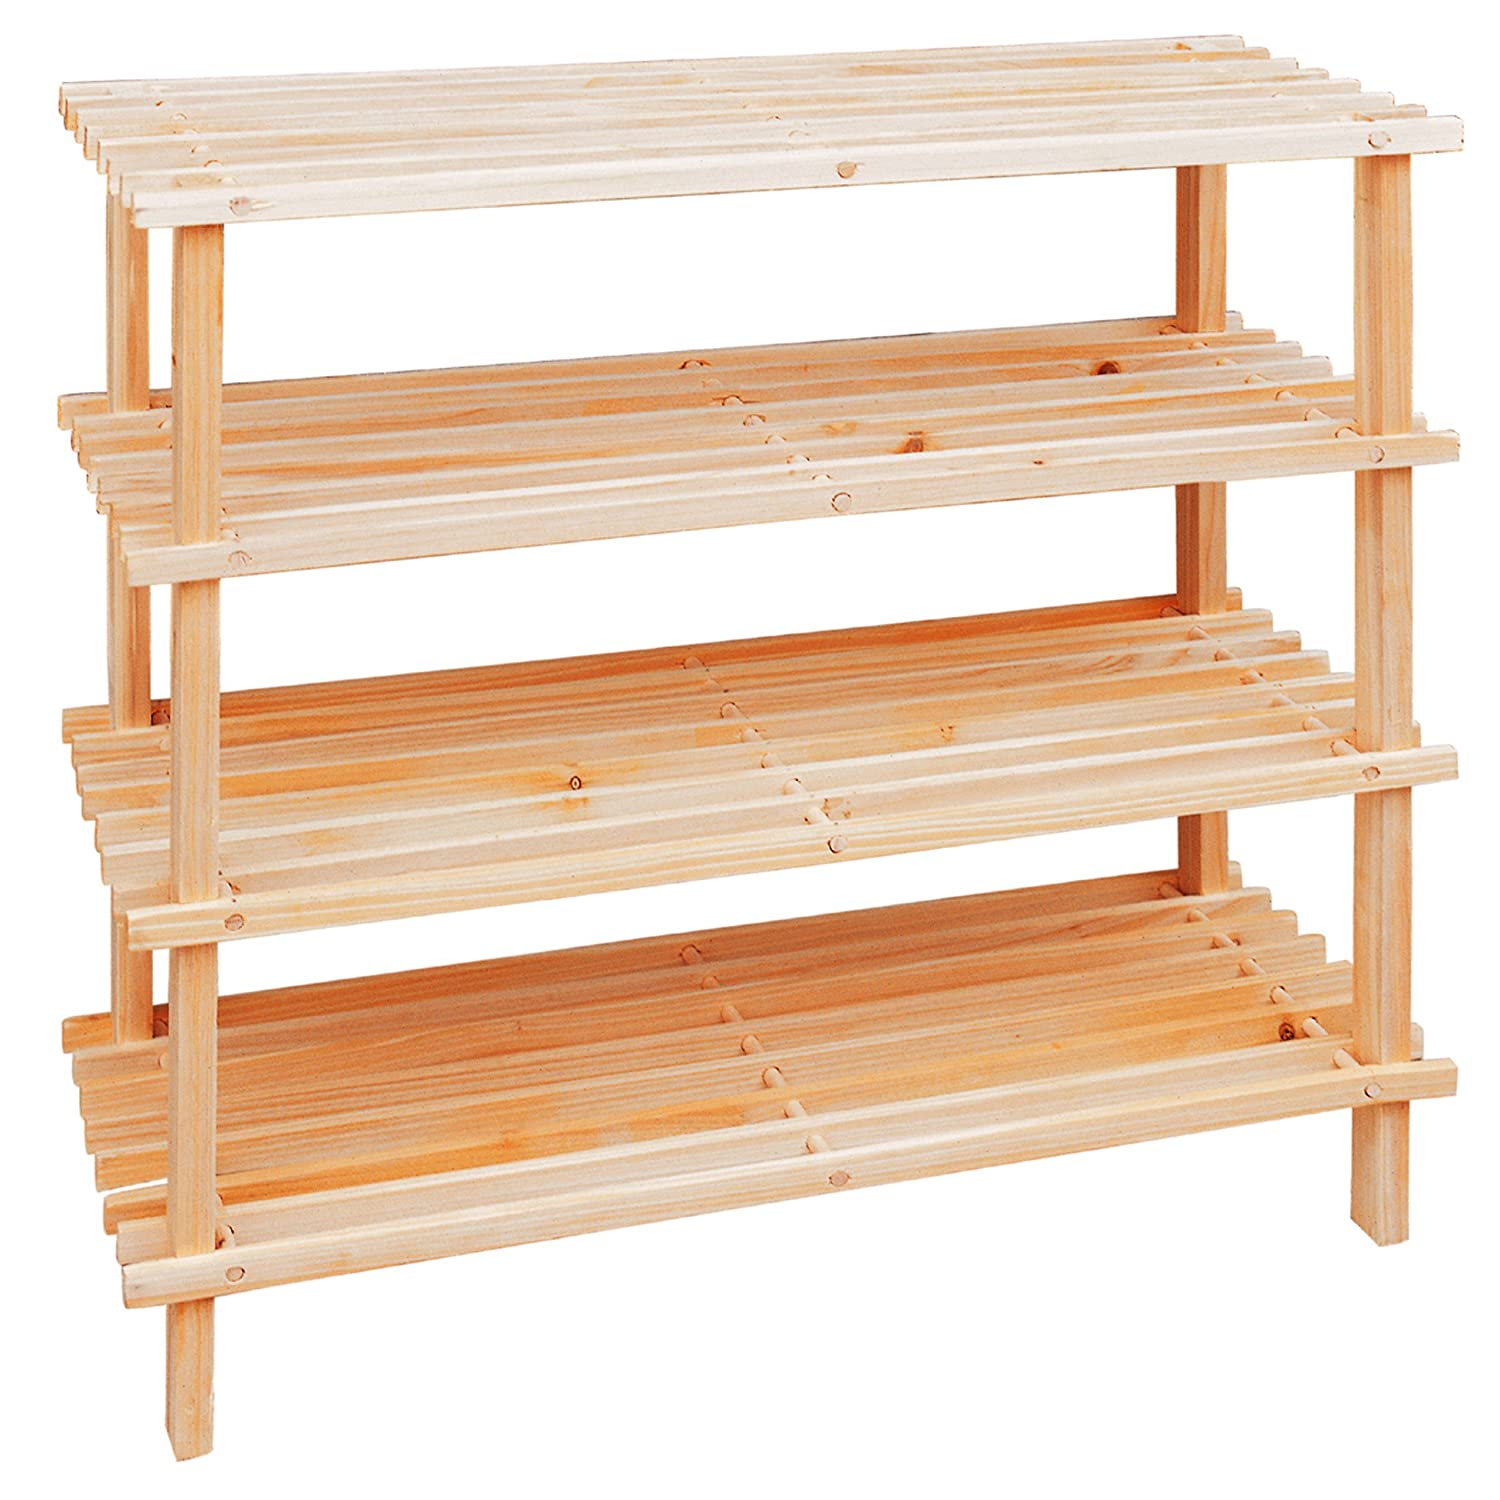 Woodworking wooden shoe rack australia PDF Free Download